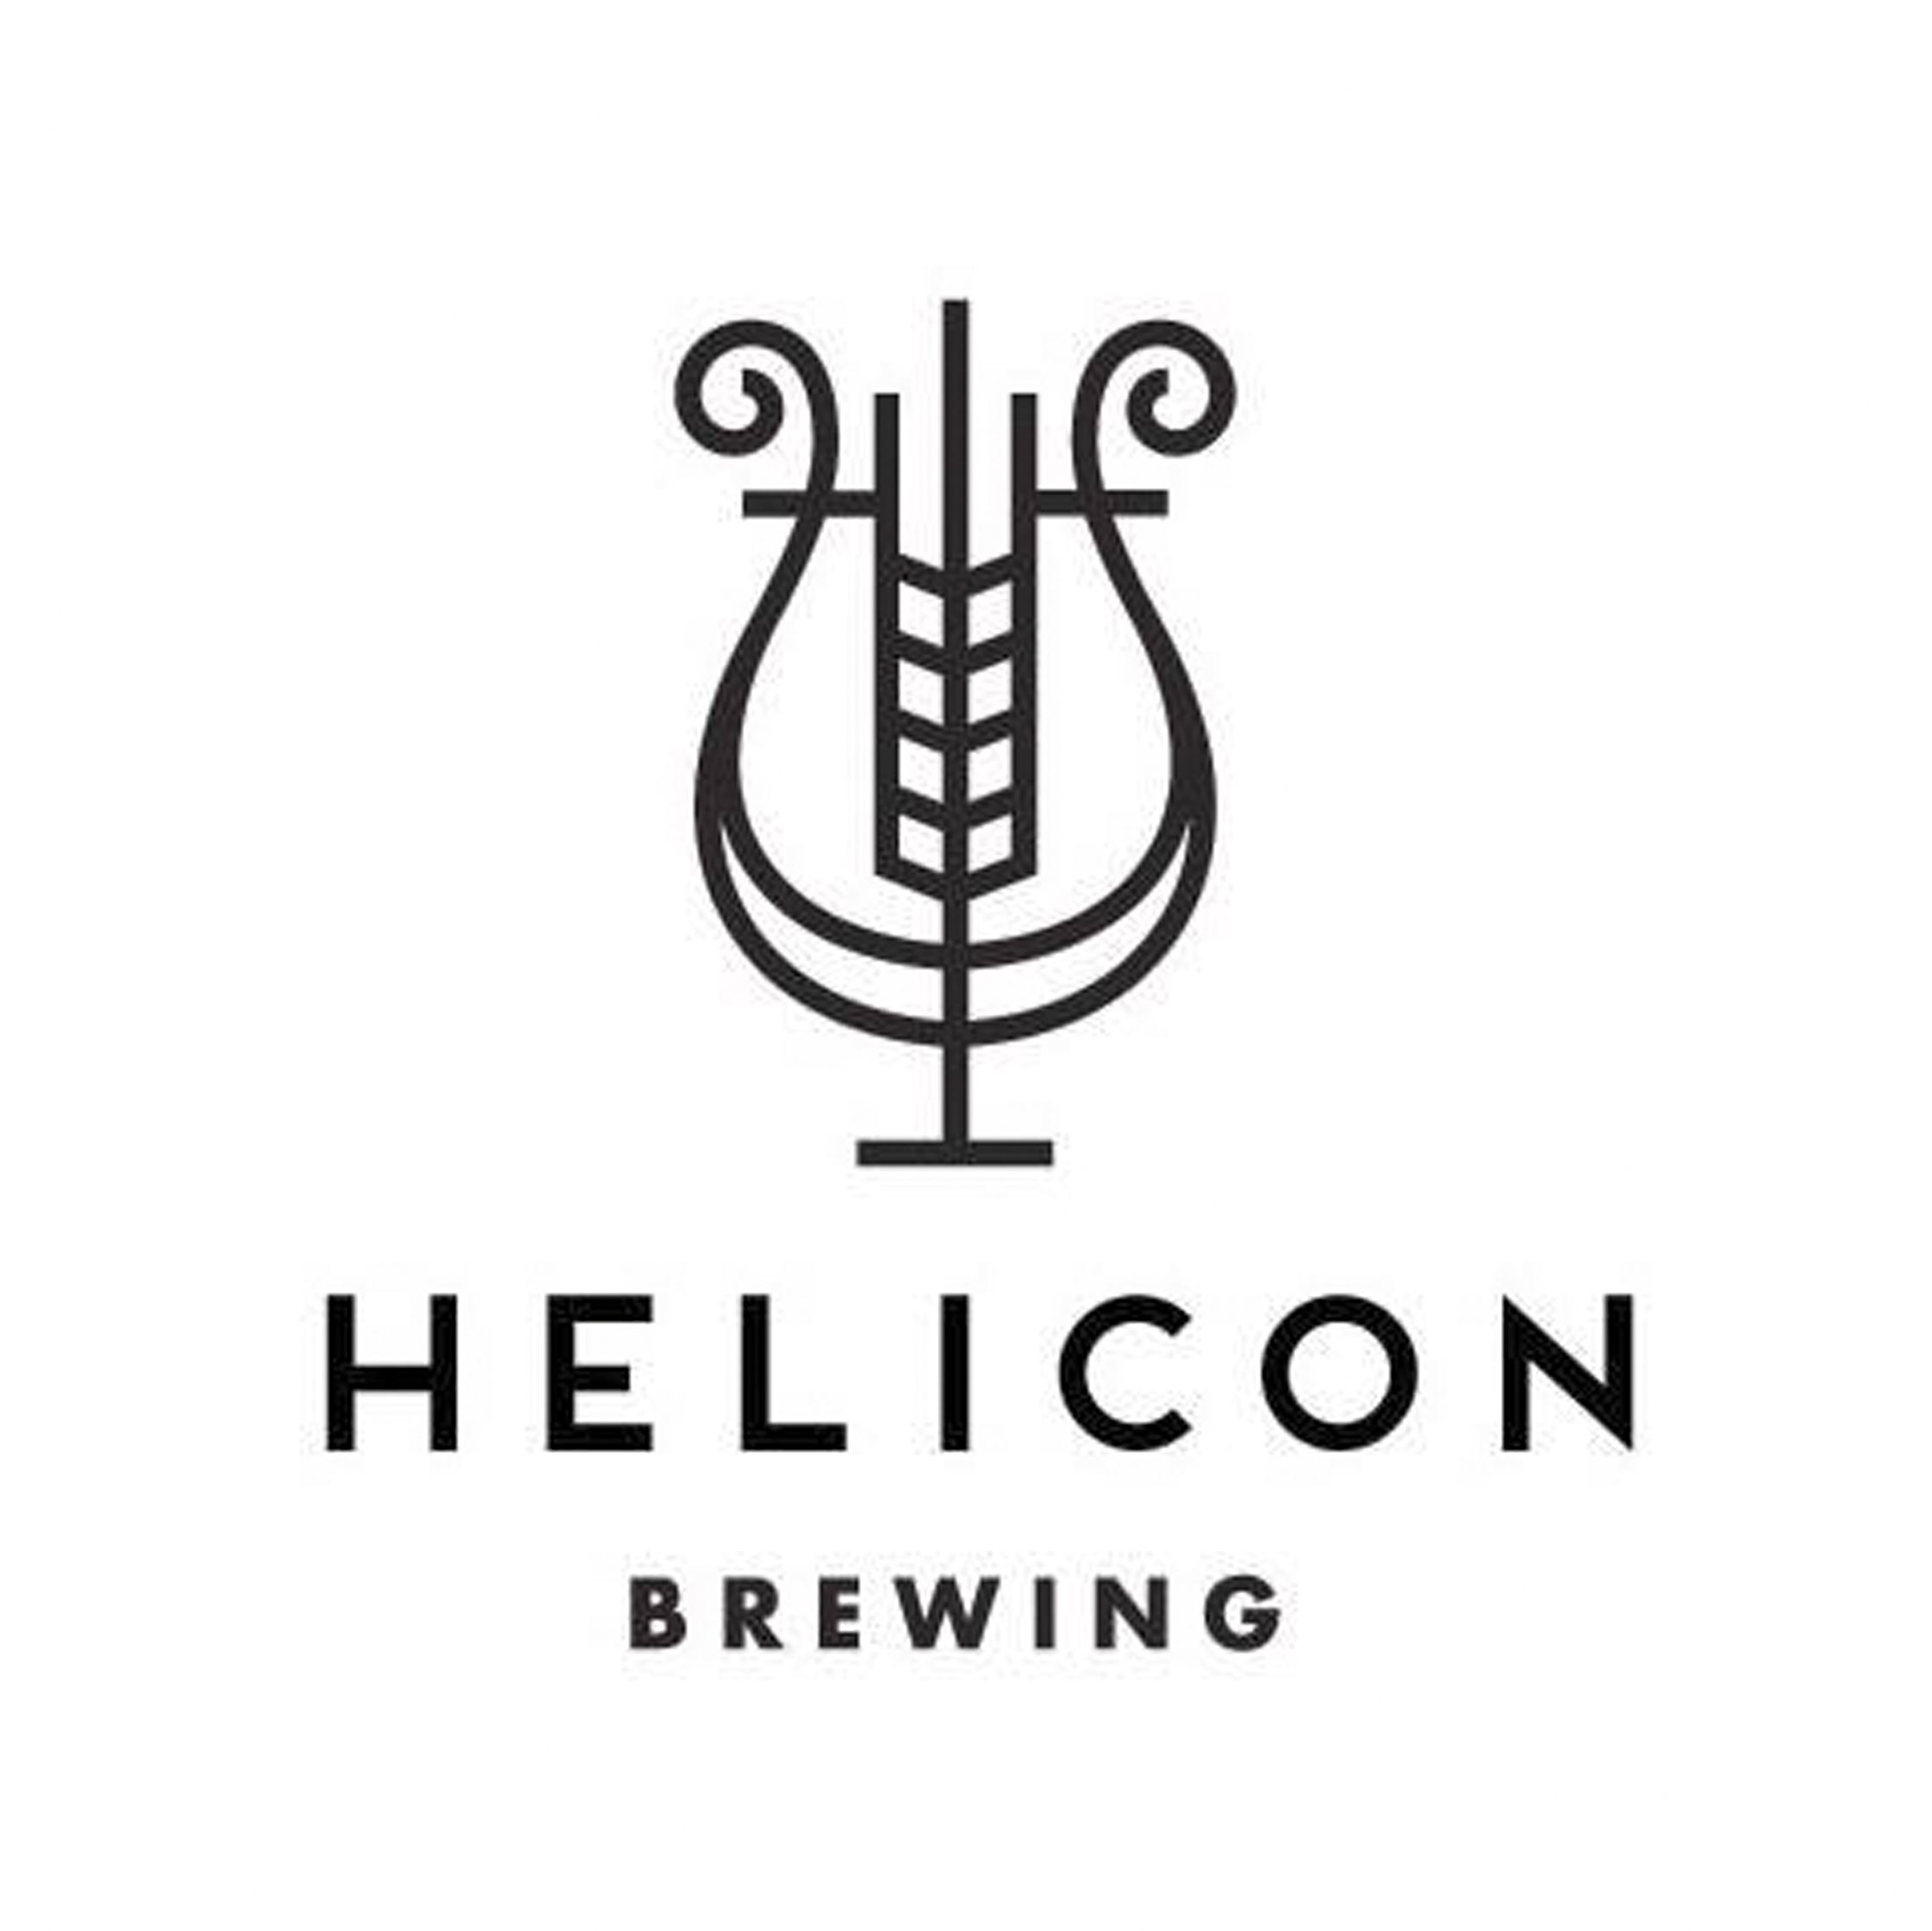 20151208hdHeliconMag-4 Logo for Helicon Brewing, that is to open in Oakdale.